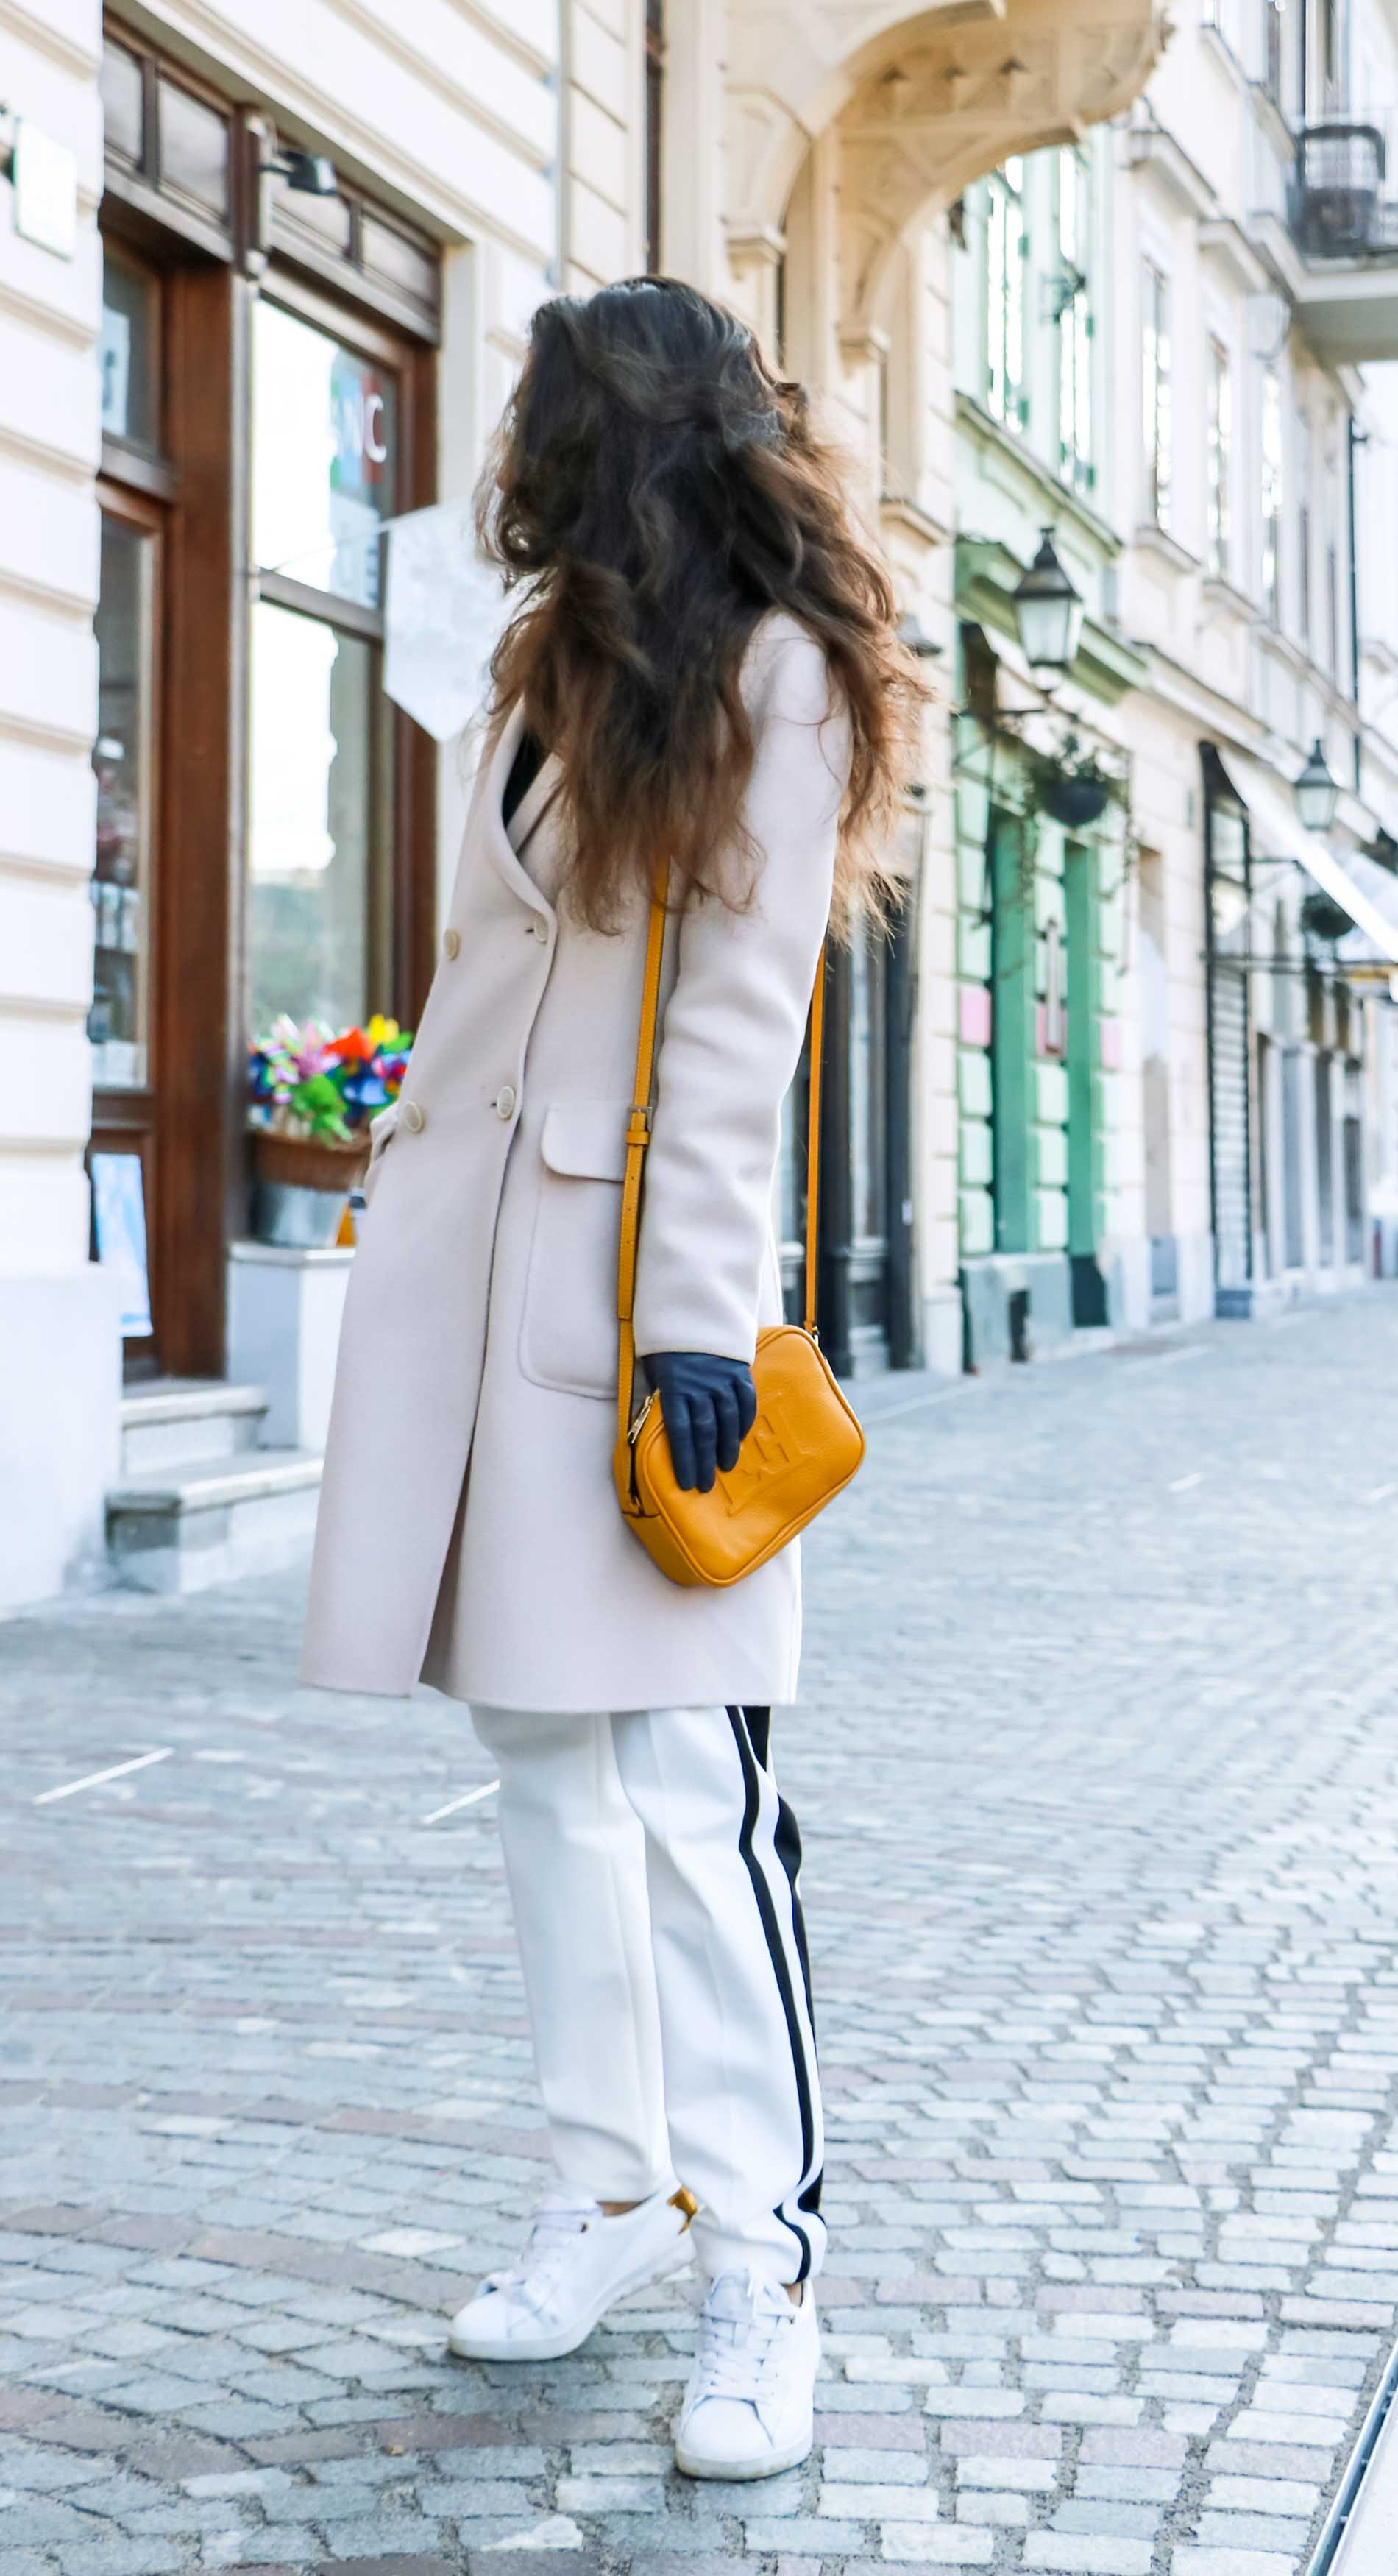 Fashion Blogger Veronika Lipar of Brunette from Wall Street wearing white track pants with black side stripe from Escada, black silk blouse, off-white pastel double breasted coat from Weekend Max Mara, white leather sneakers from Diesel, yellow shoulder bag from Escada while standing on the street in Ljubljana